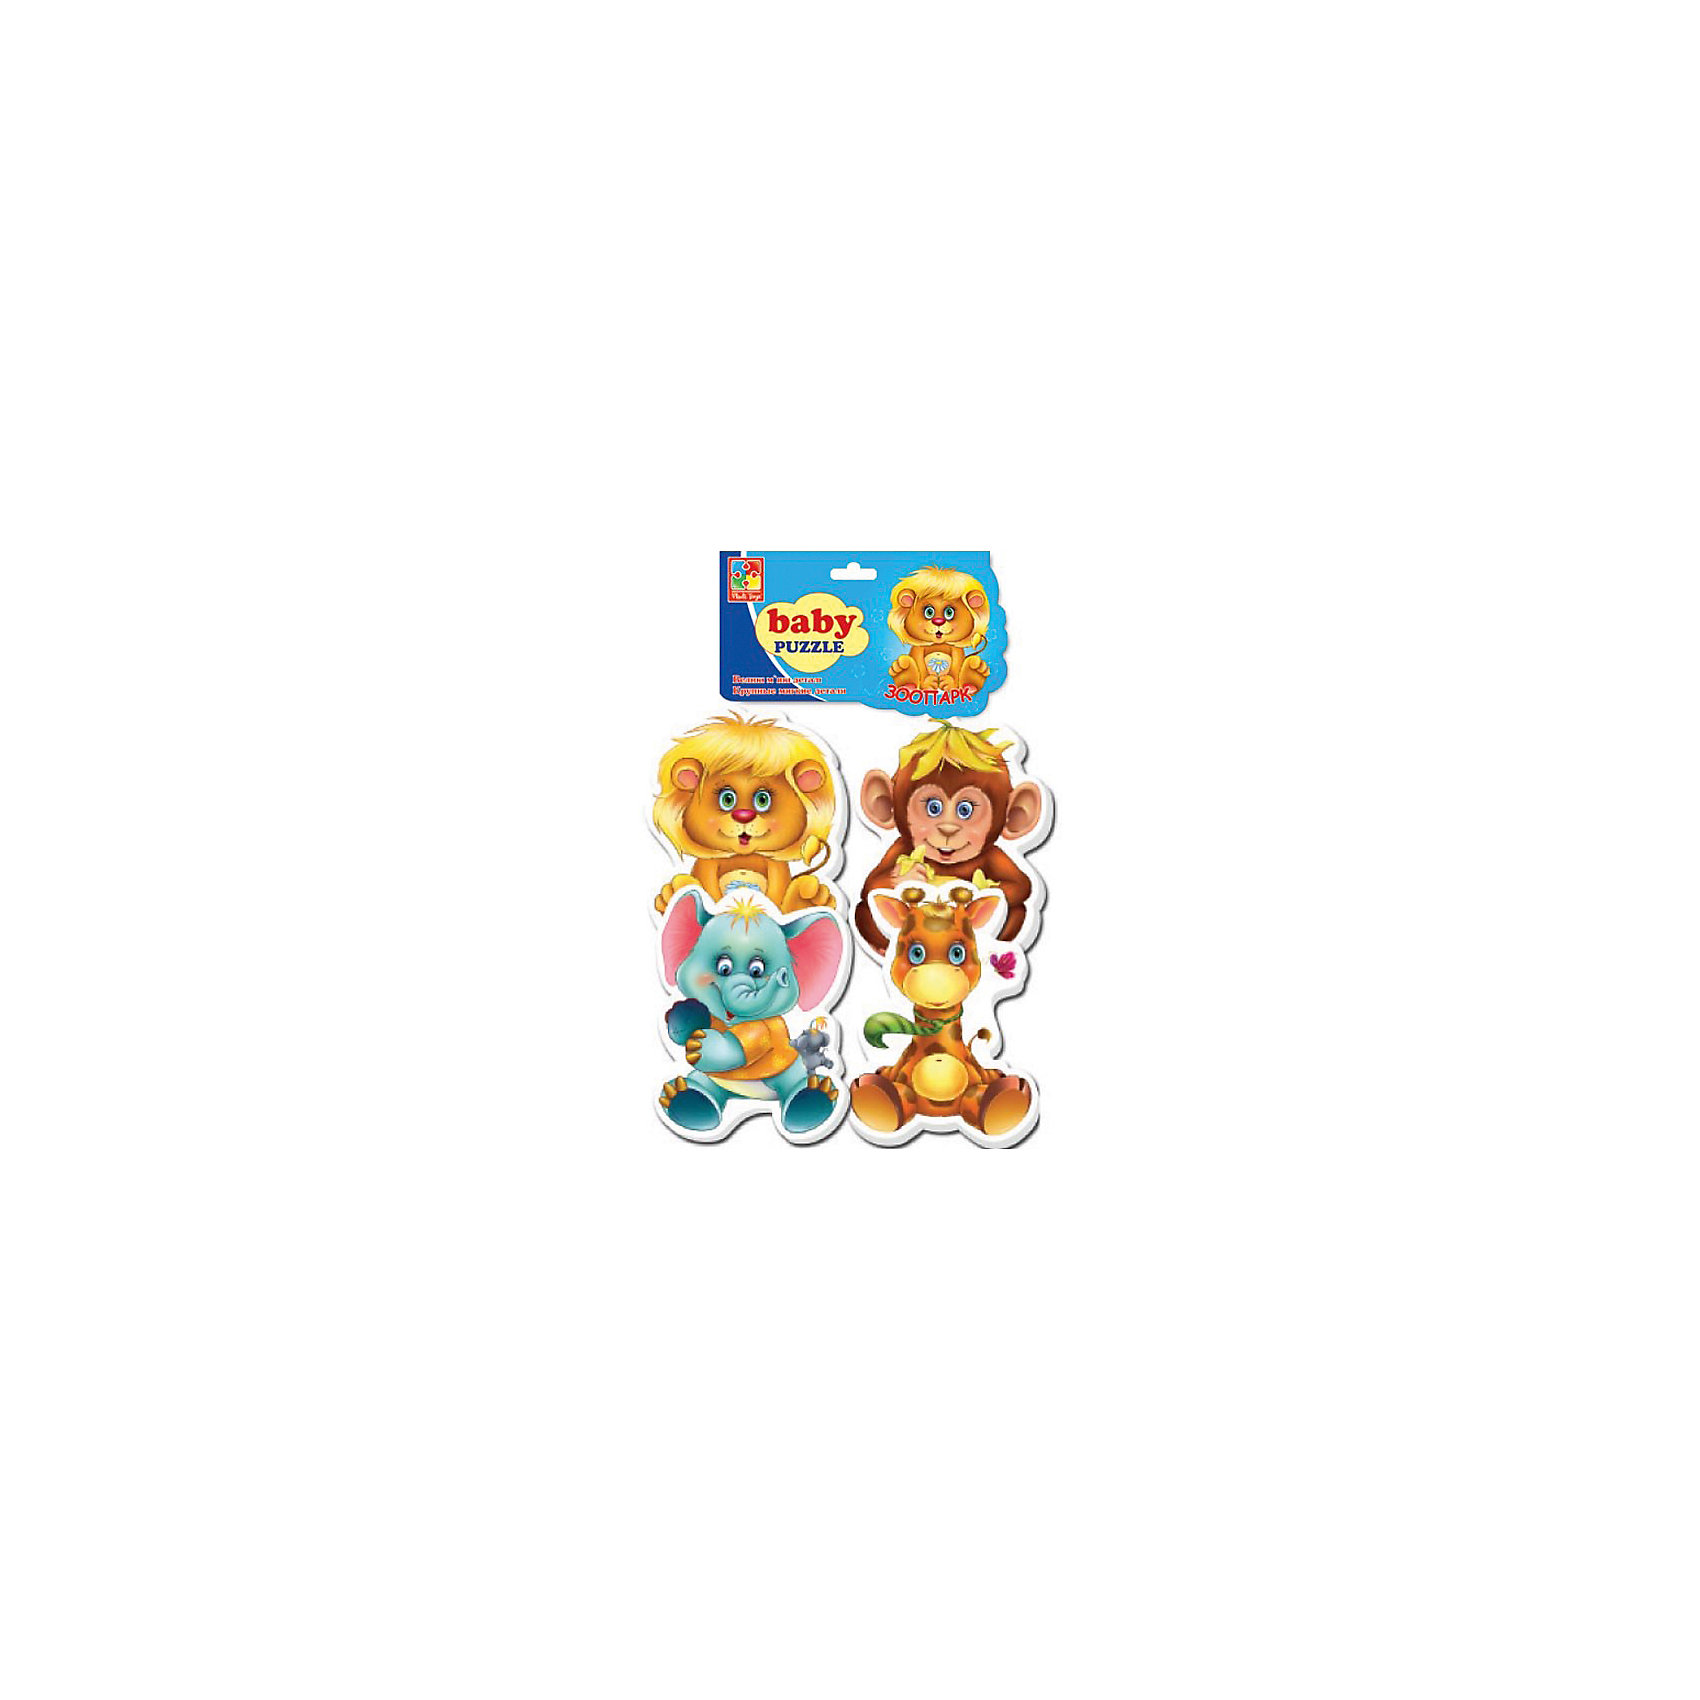 Vladi Toys Мягкие пазлы Зоопарк, Vladi Toys пазлы vladi toys пазлы мягкие baby puzzle сказки репка